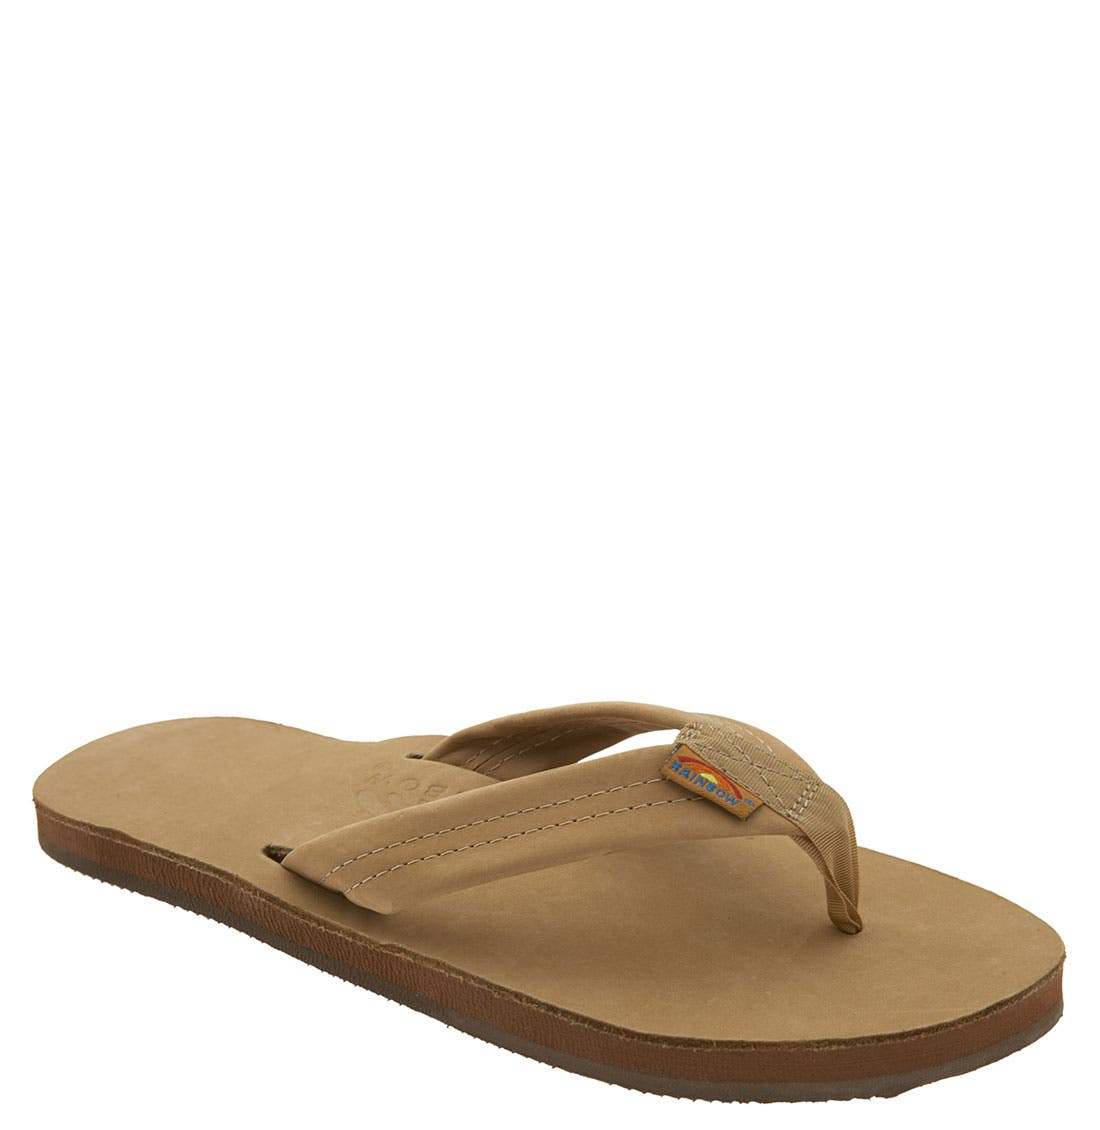 '301Alts' Sandal,                             Main thumbnail 1, color,                             Brown